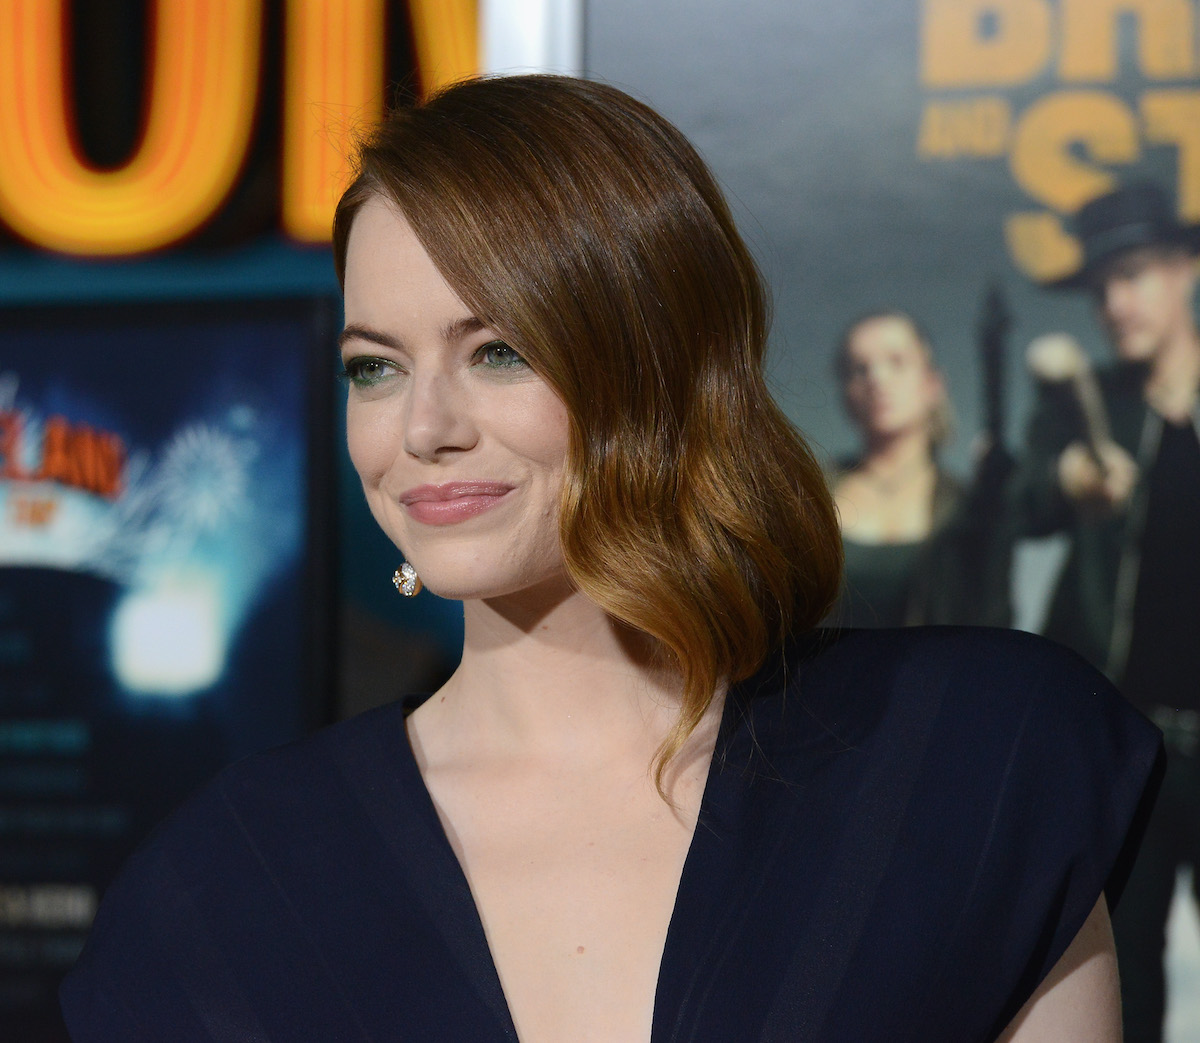 Emma Stone at the premiere of 'Zombieland: Double Tap'